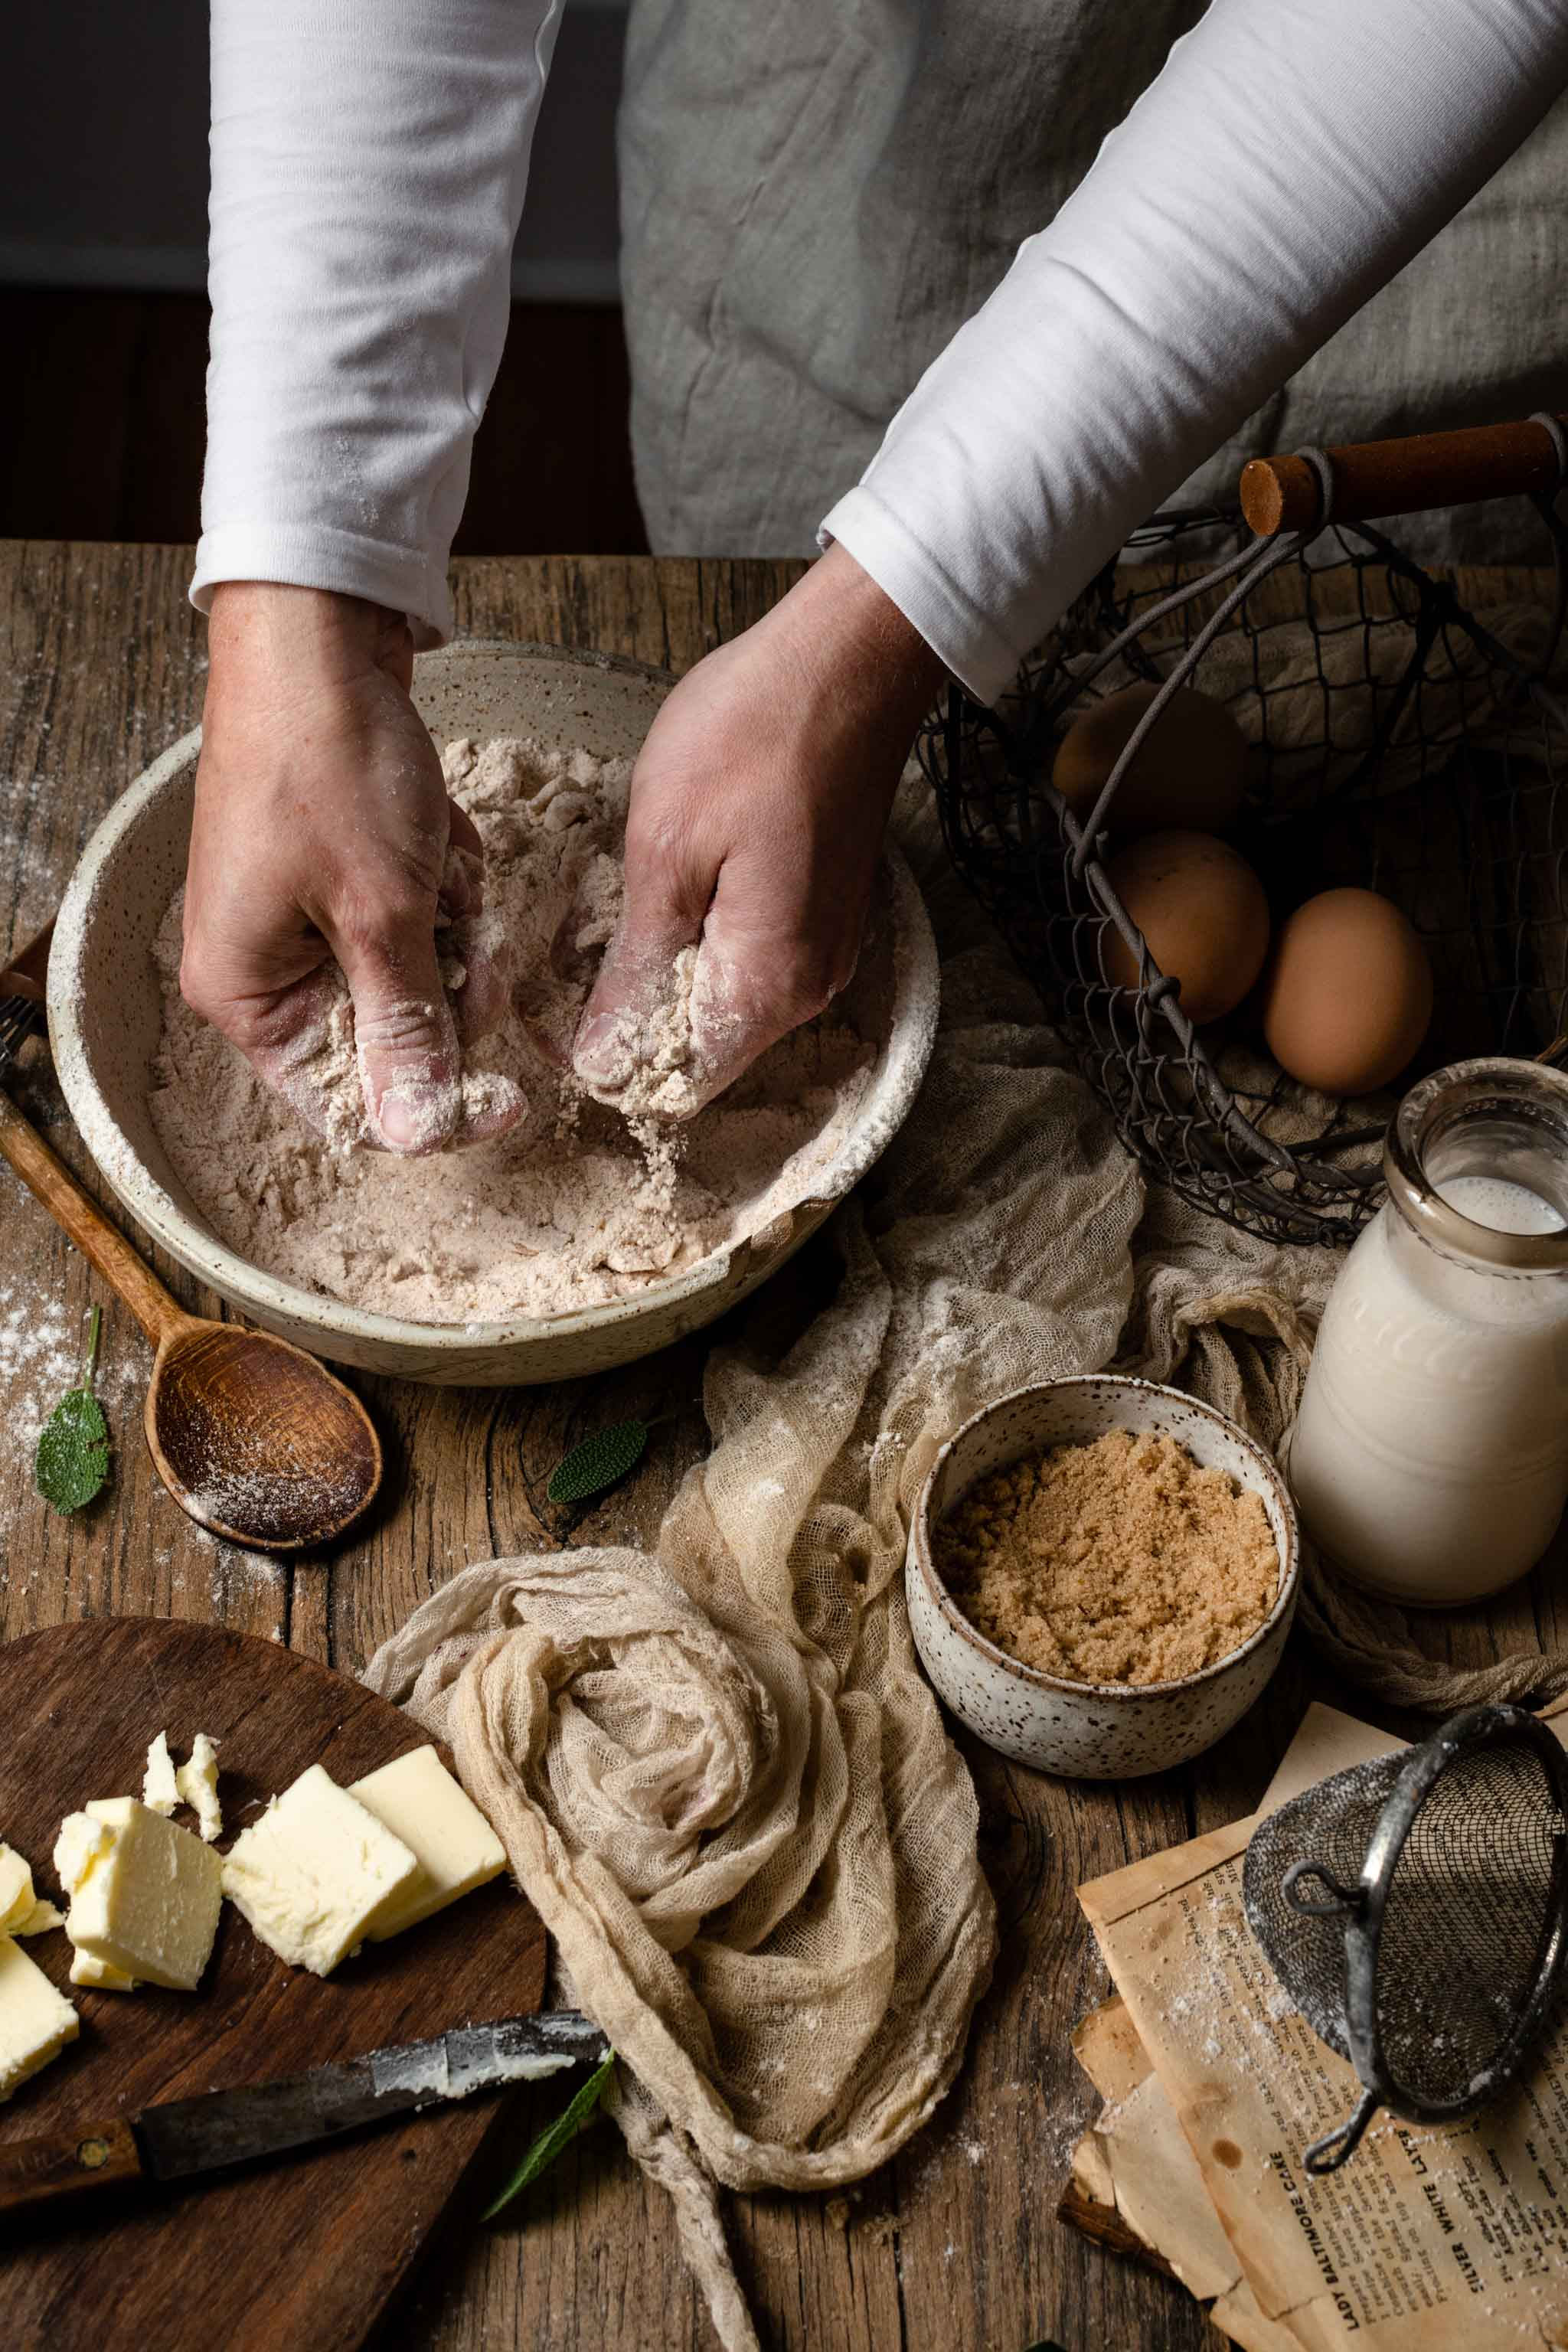 Food photography of baker mixer butter and flour together with hands